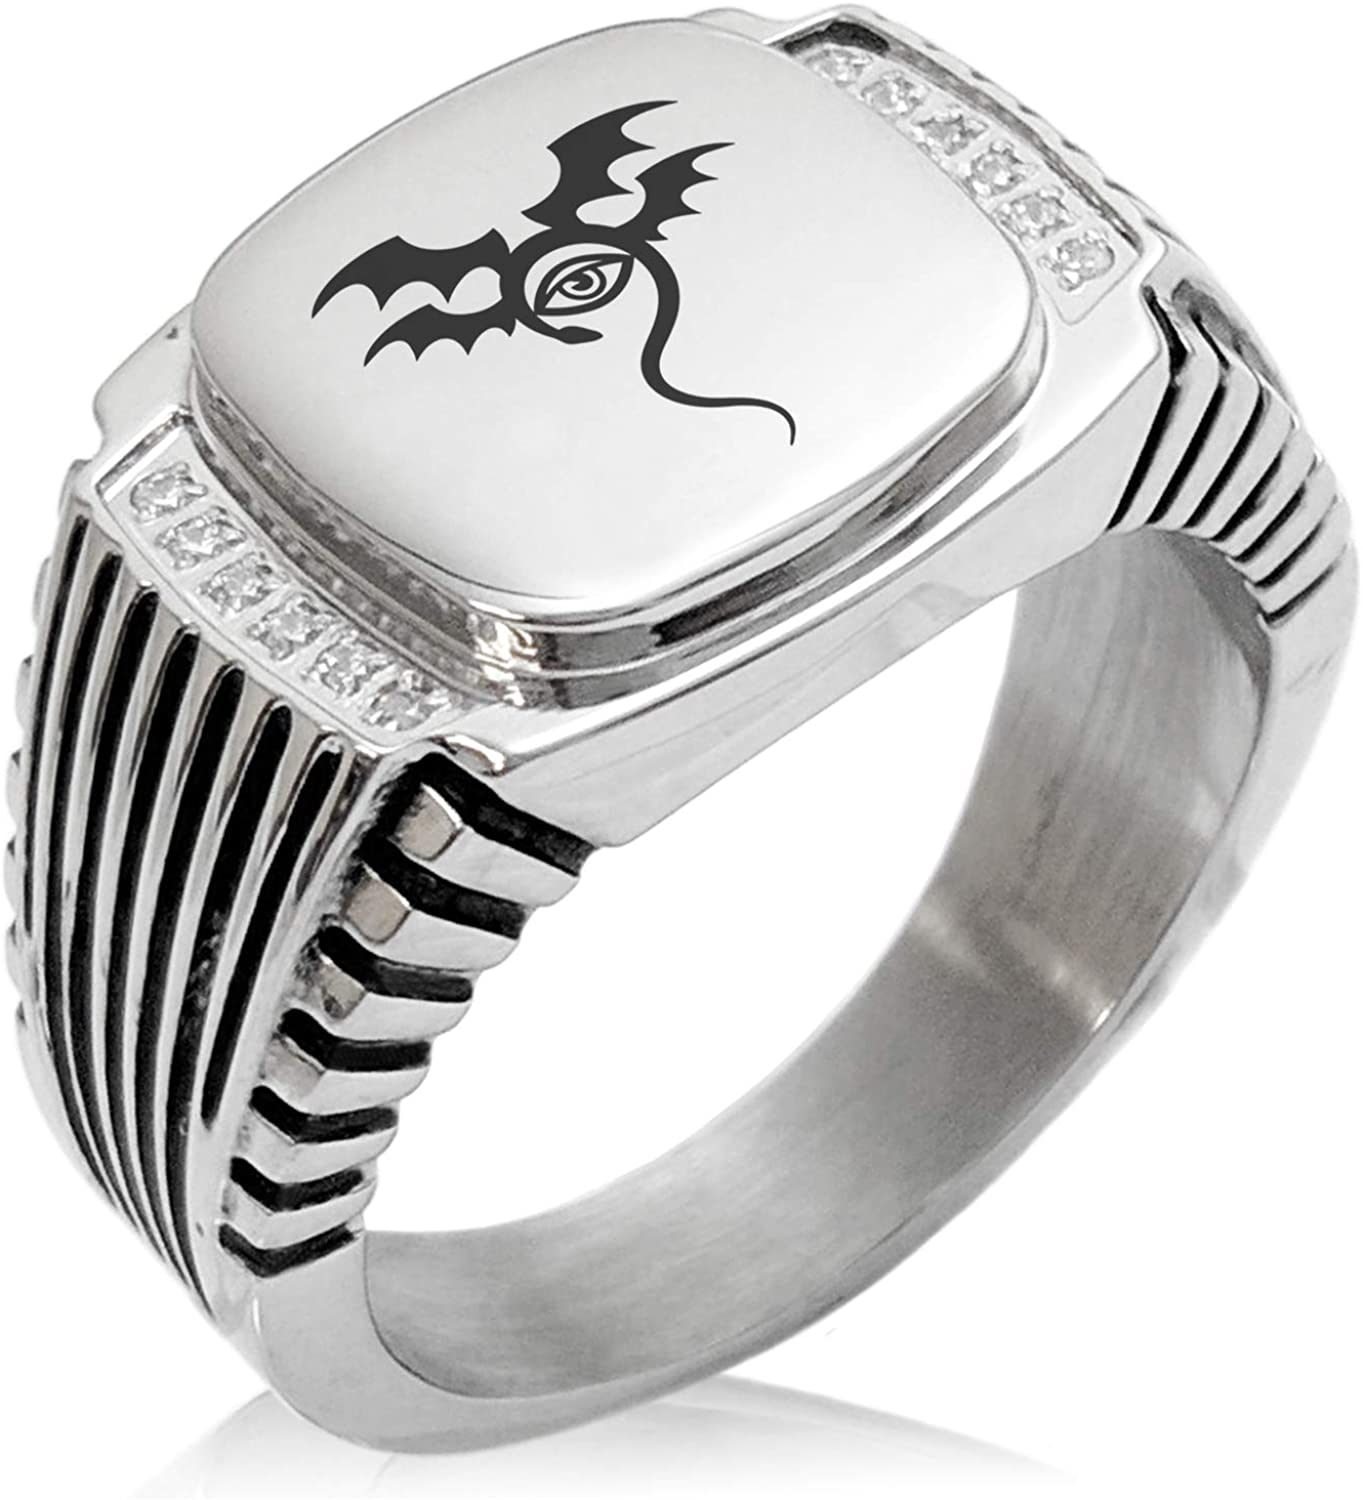 Tioneer Stainless Steel Oracle Emblem CZ Ribbed Needle Stripe Pattern Biker Style Polished Ring